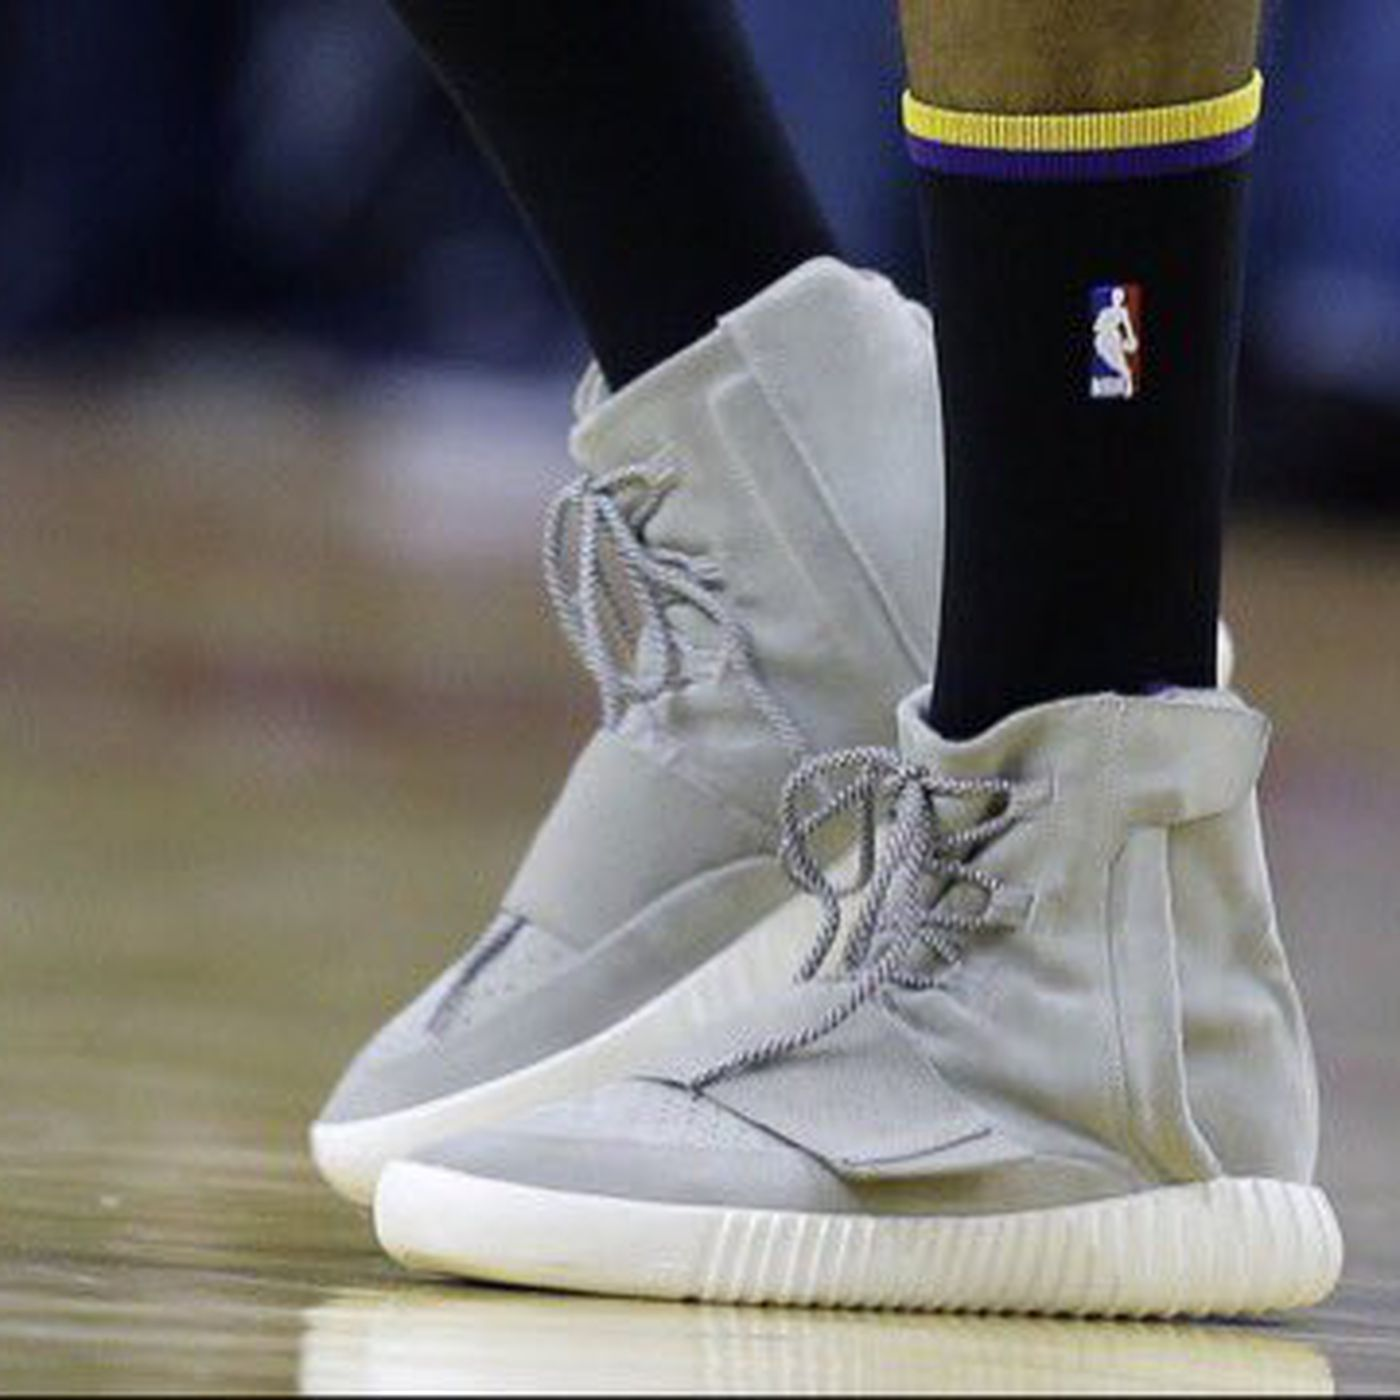 2aadf3a45e97 Nick Young played professional basketball in Yeezy 750 Boosts - SBNation.com